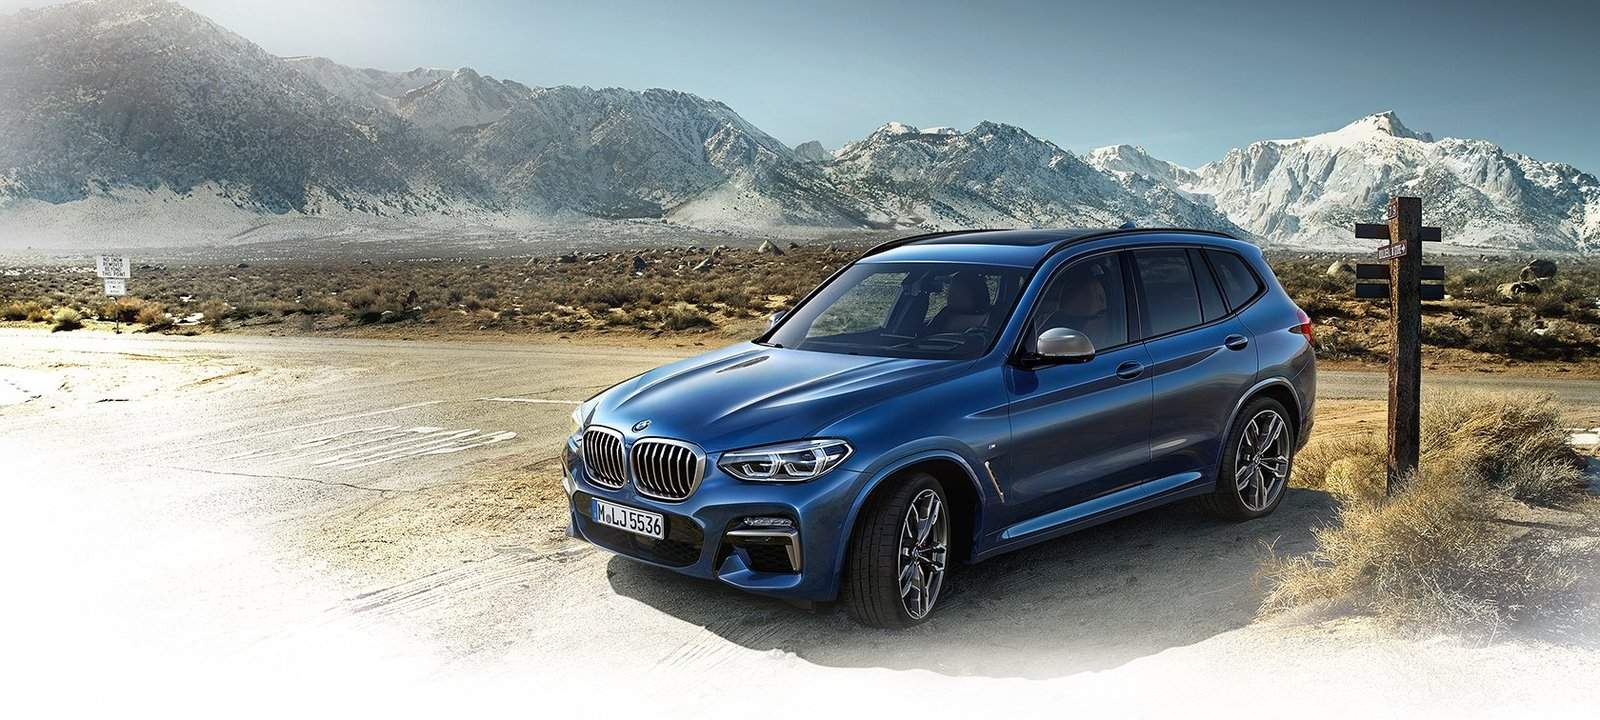 2018 bmw x3 official photos and details leaked including. Black Bedroom Furniture Sets. Home Design Ideas